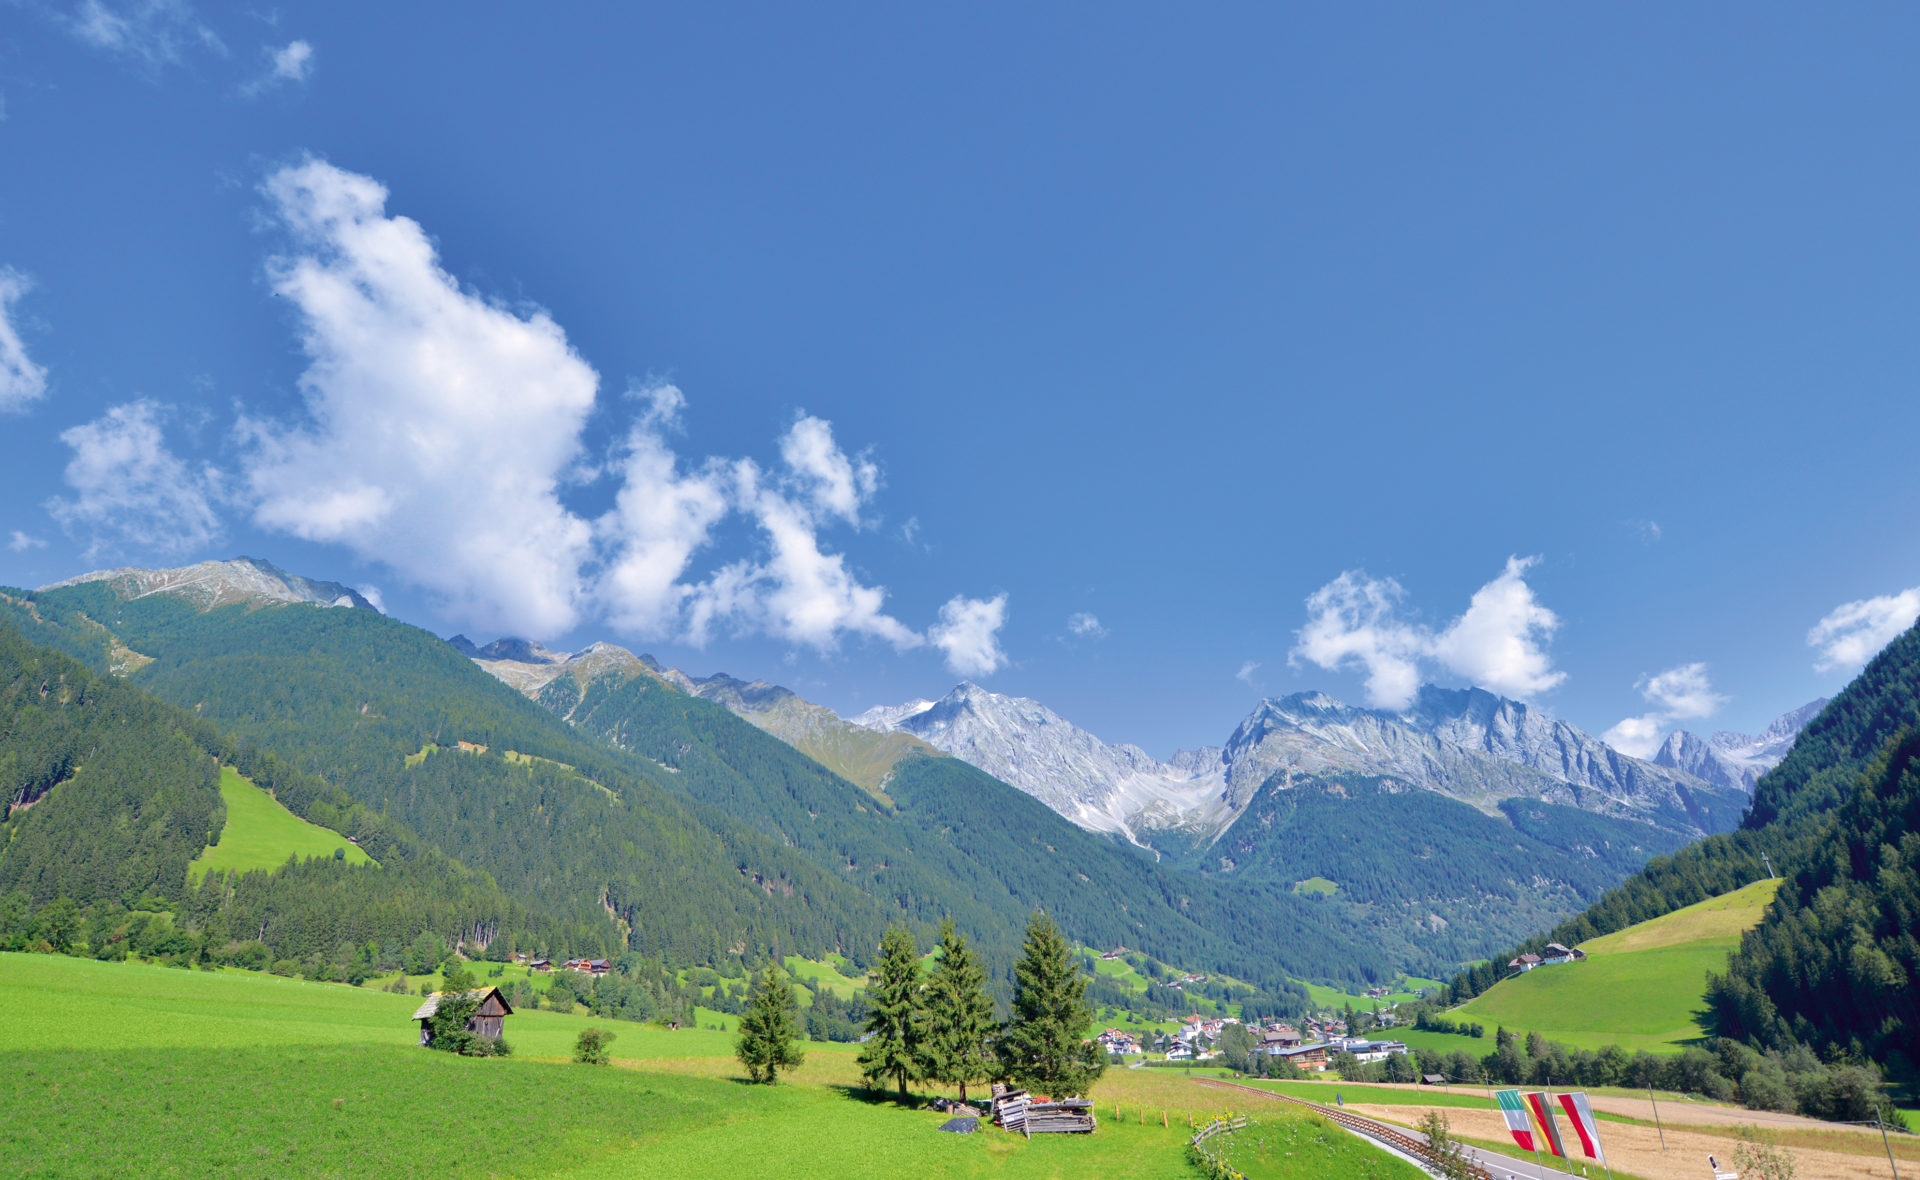 Summer holidays in the Antholzertal valley